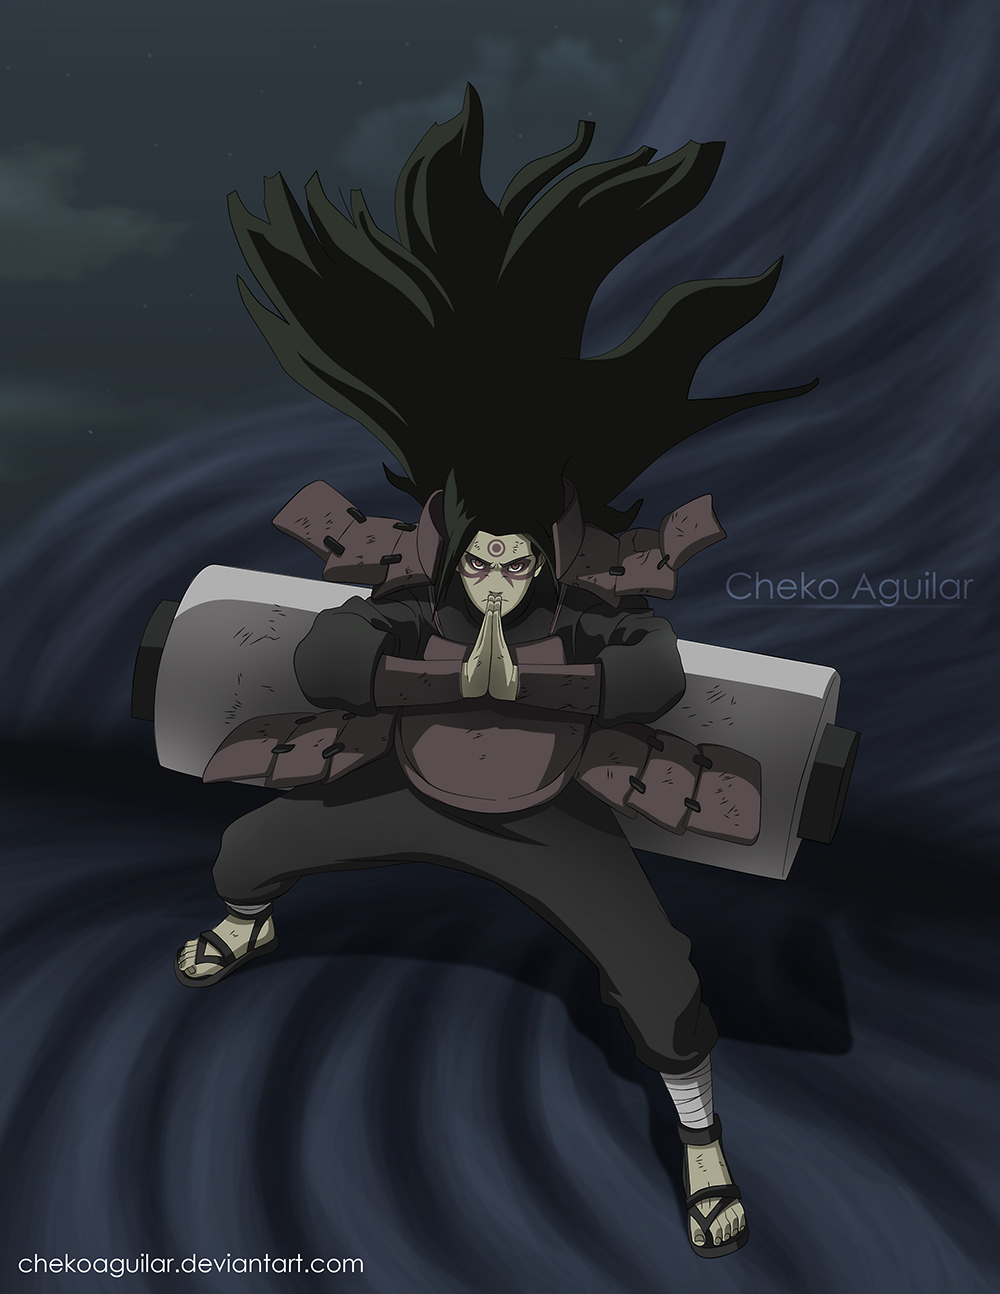 Iphone Built In Wallpapers Madara Vs Hashirama Continues Their First Contact